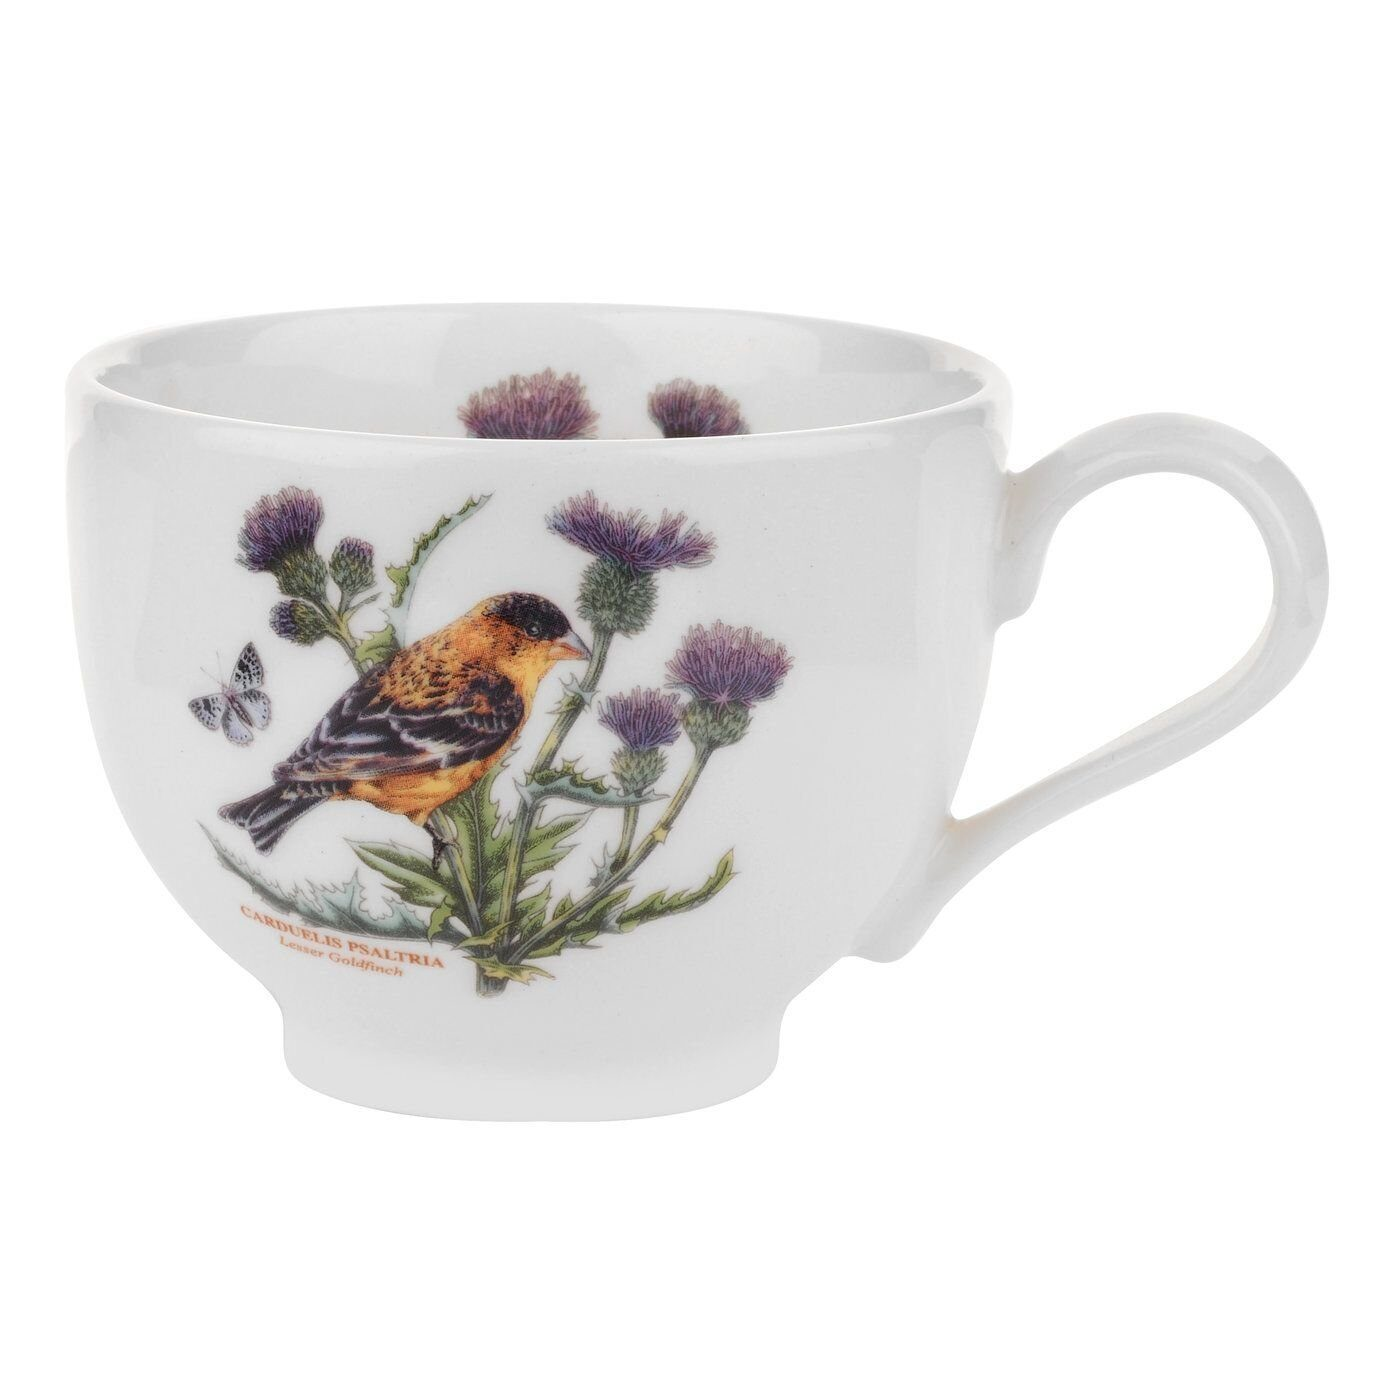 Portmeirion Botanic Garden Birds Cup and Saucer Lesser Goldfinch 1);